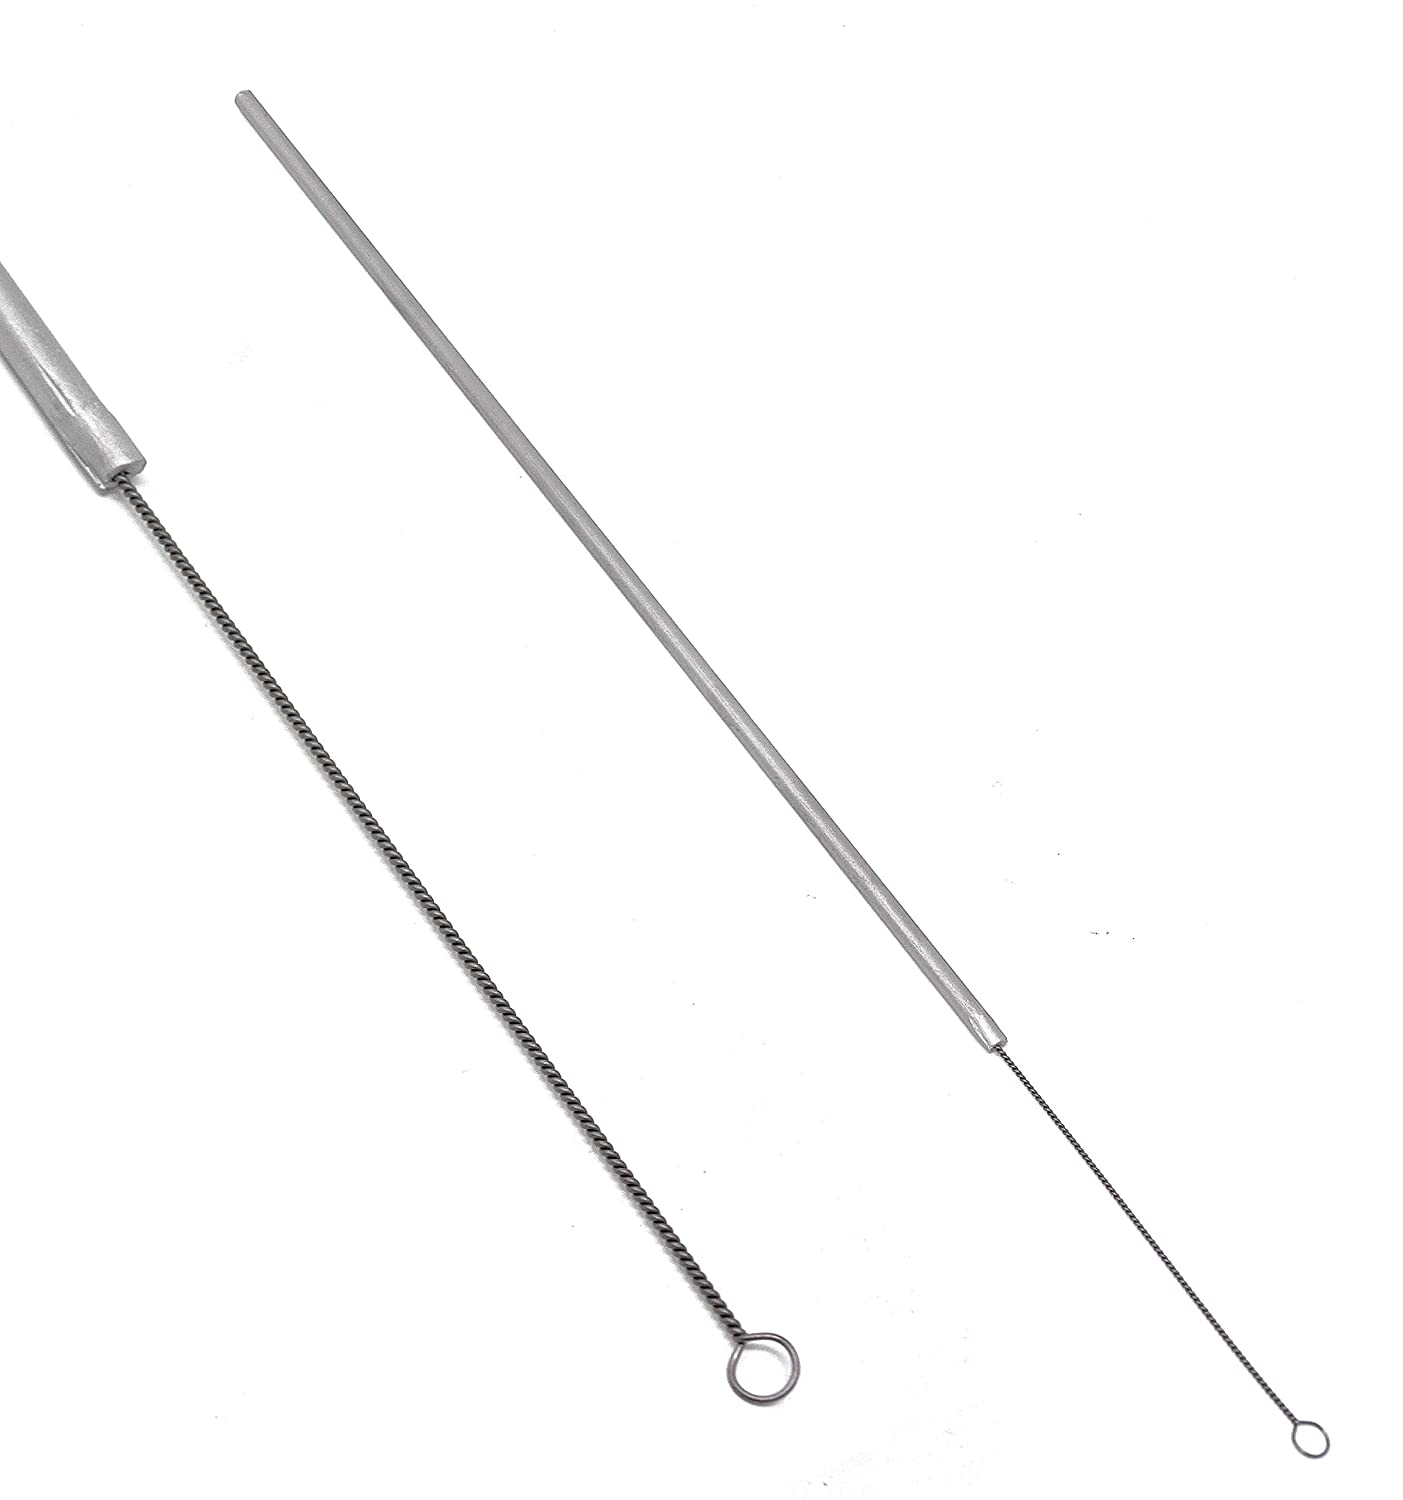 Edu-Labs Student Inoculating Loop with Insulated PVC Handle 3 mm